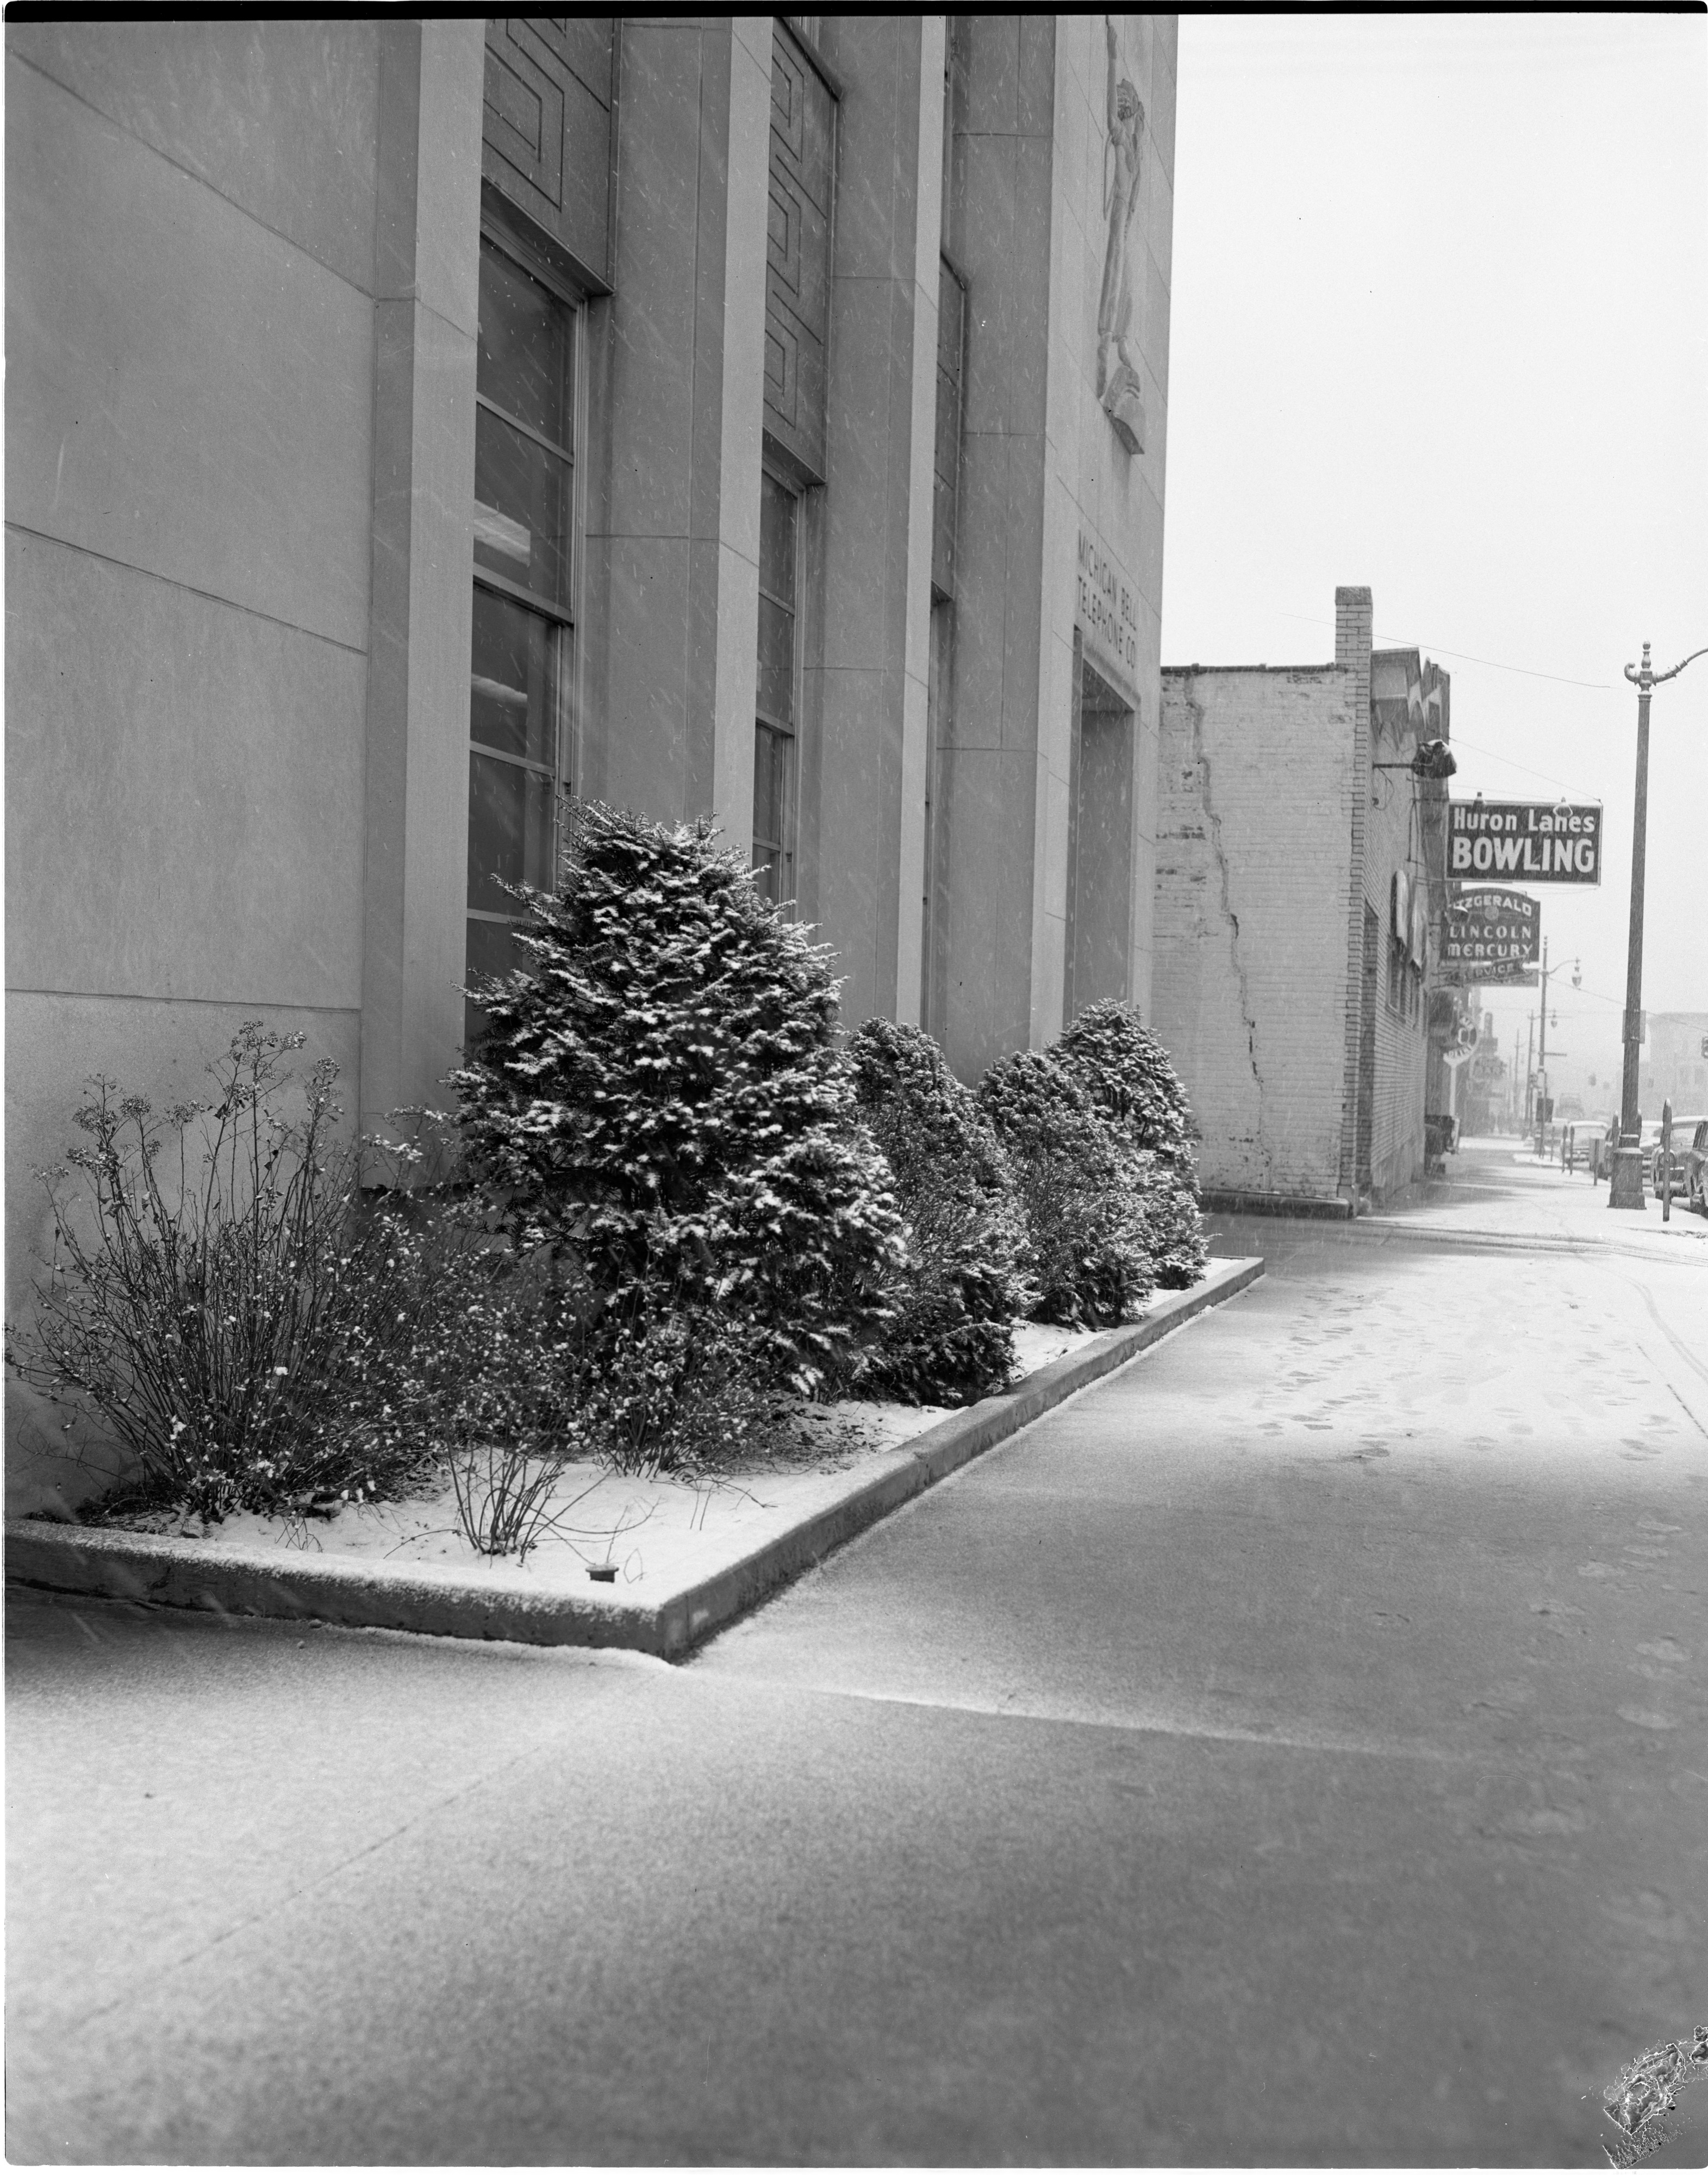 Snowy Sidewalk On East Huron Street, March 1956 image